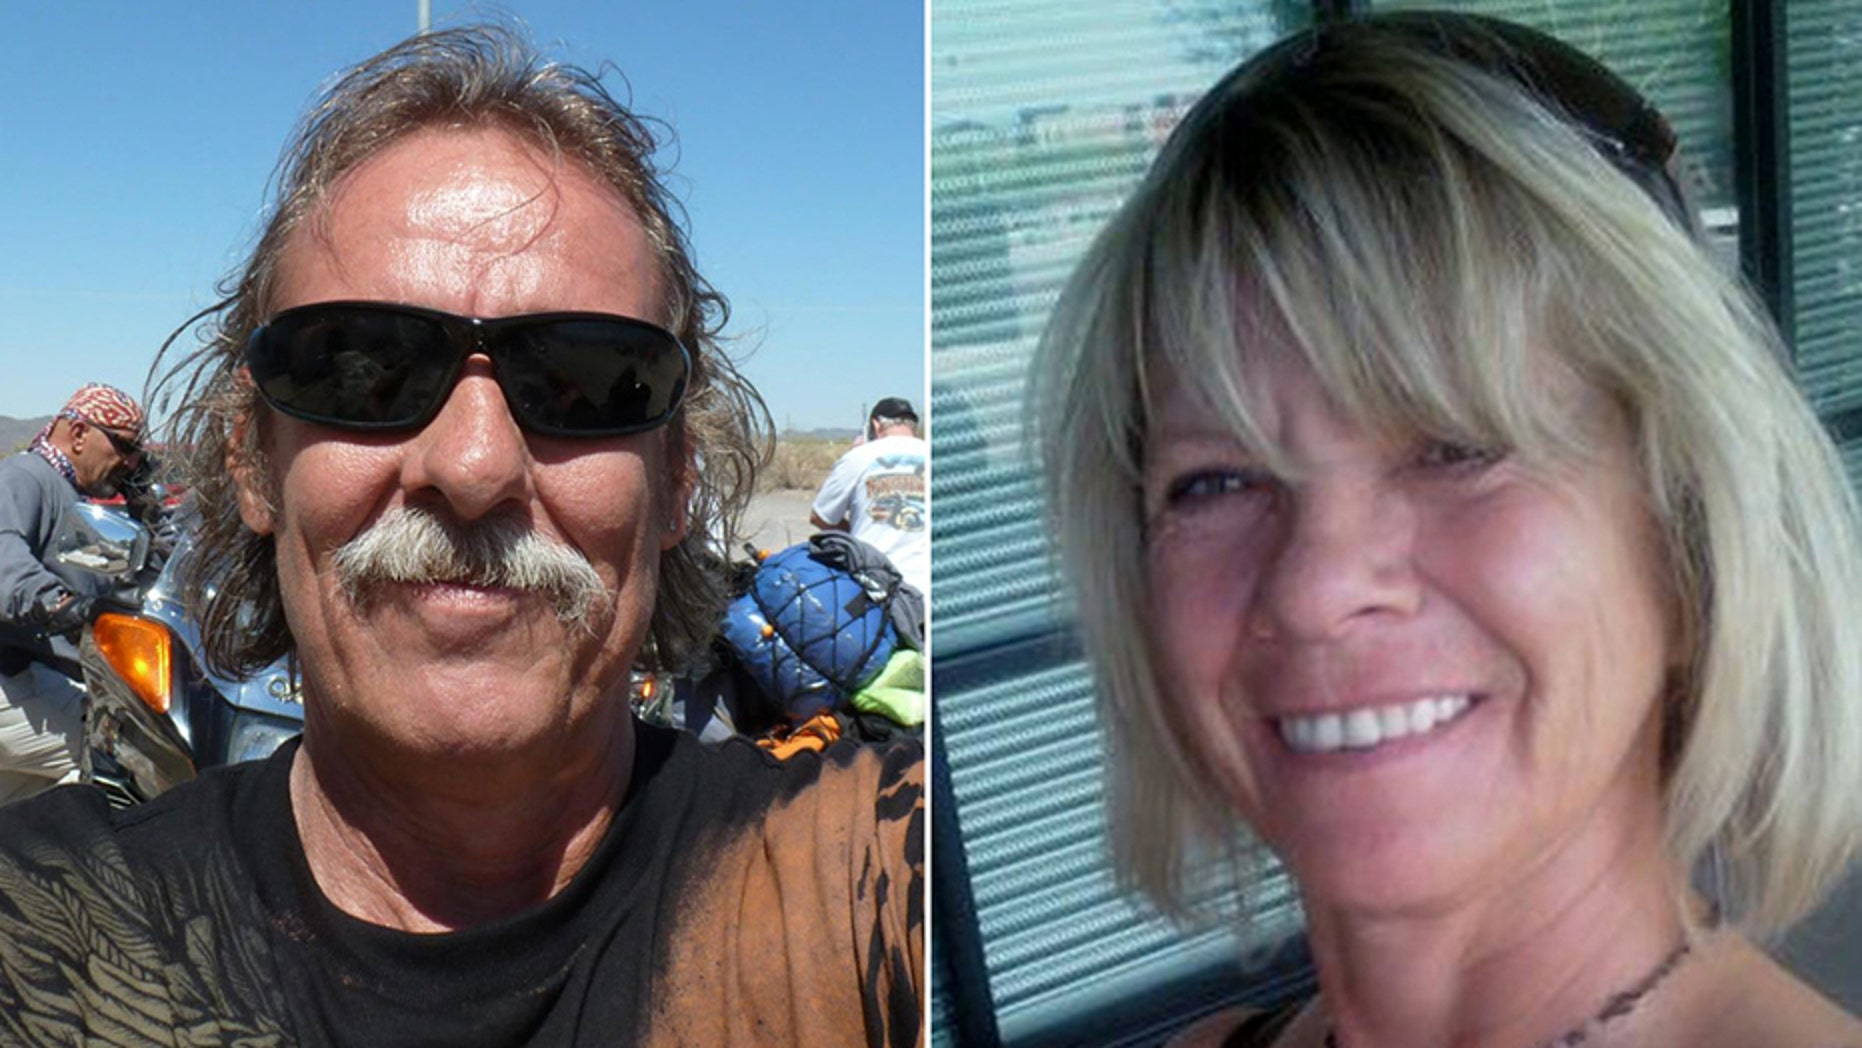 Normand Larose, left, and Rosalyn Few, right, were killed in the accident, the report said.